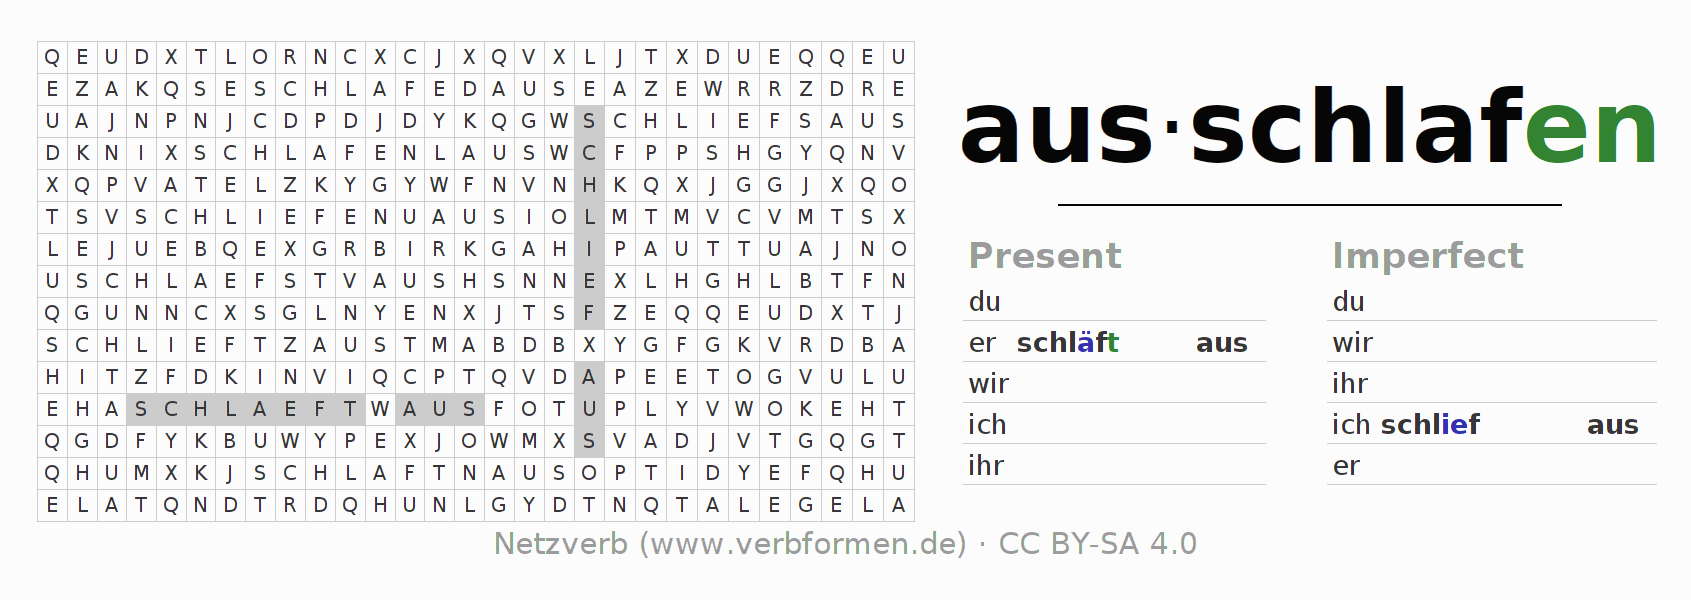 Word search puzzle for the conjugation of the verb ausschlafen